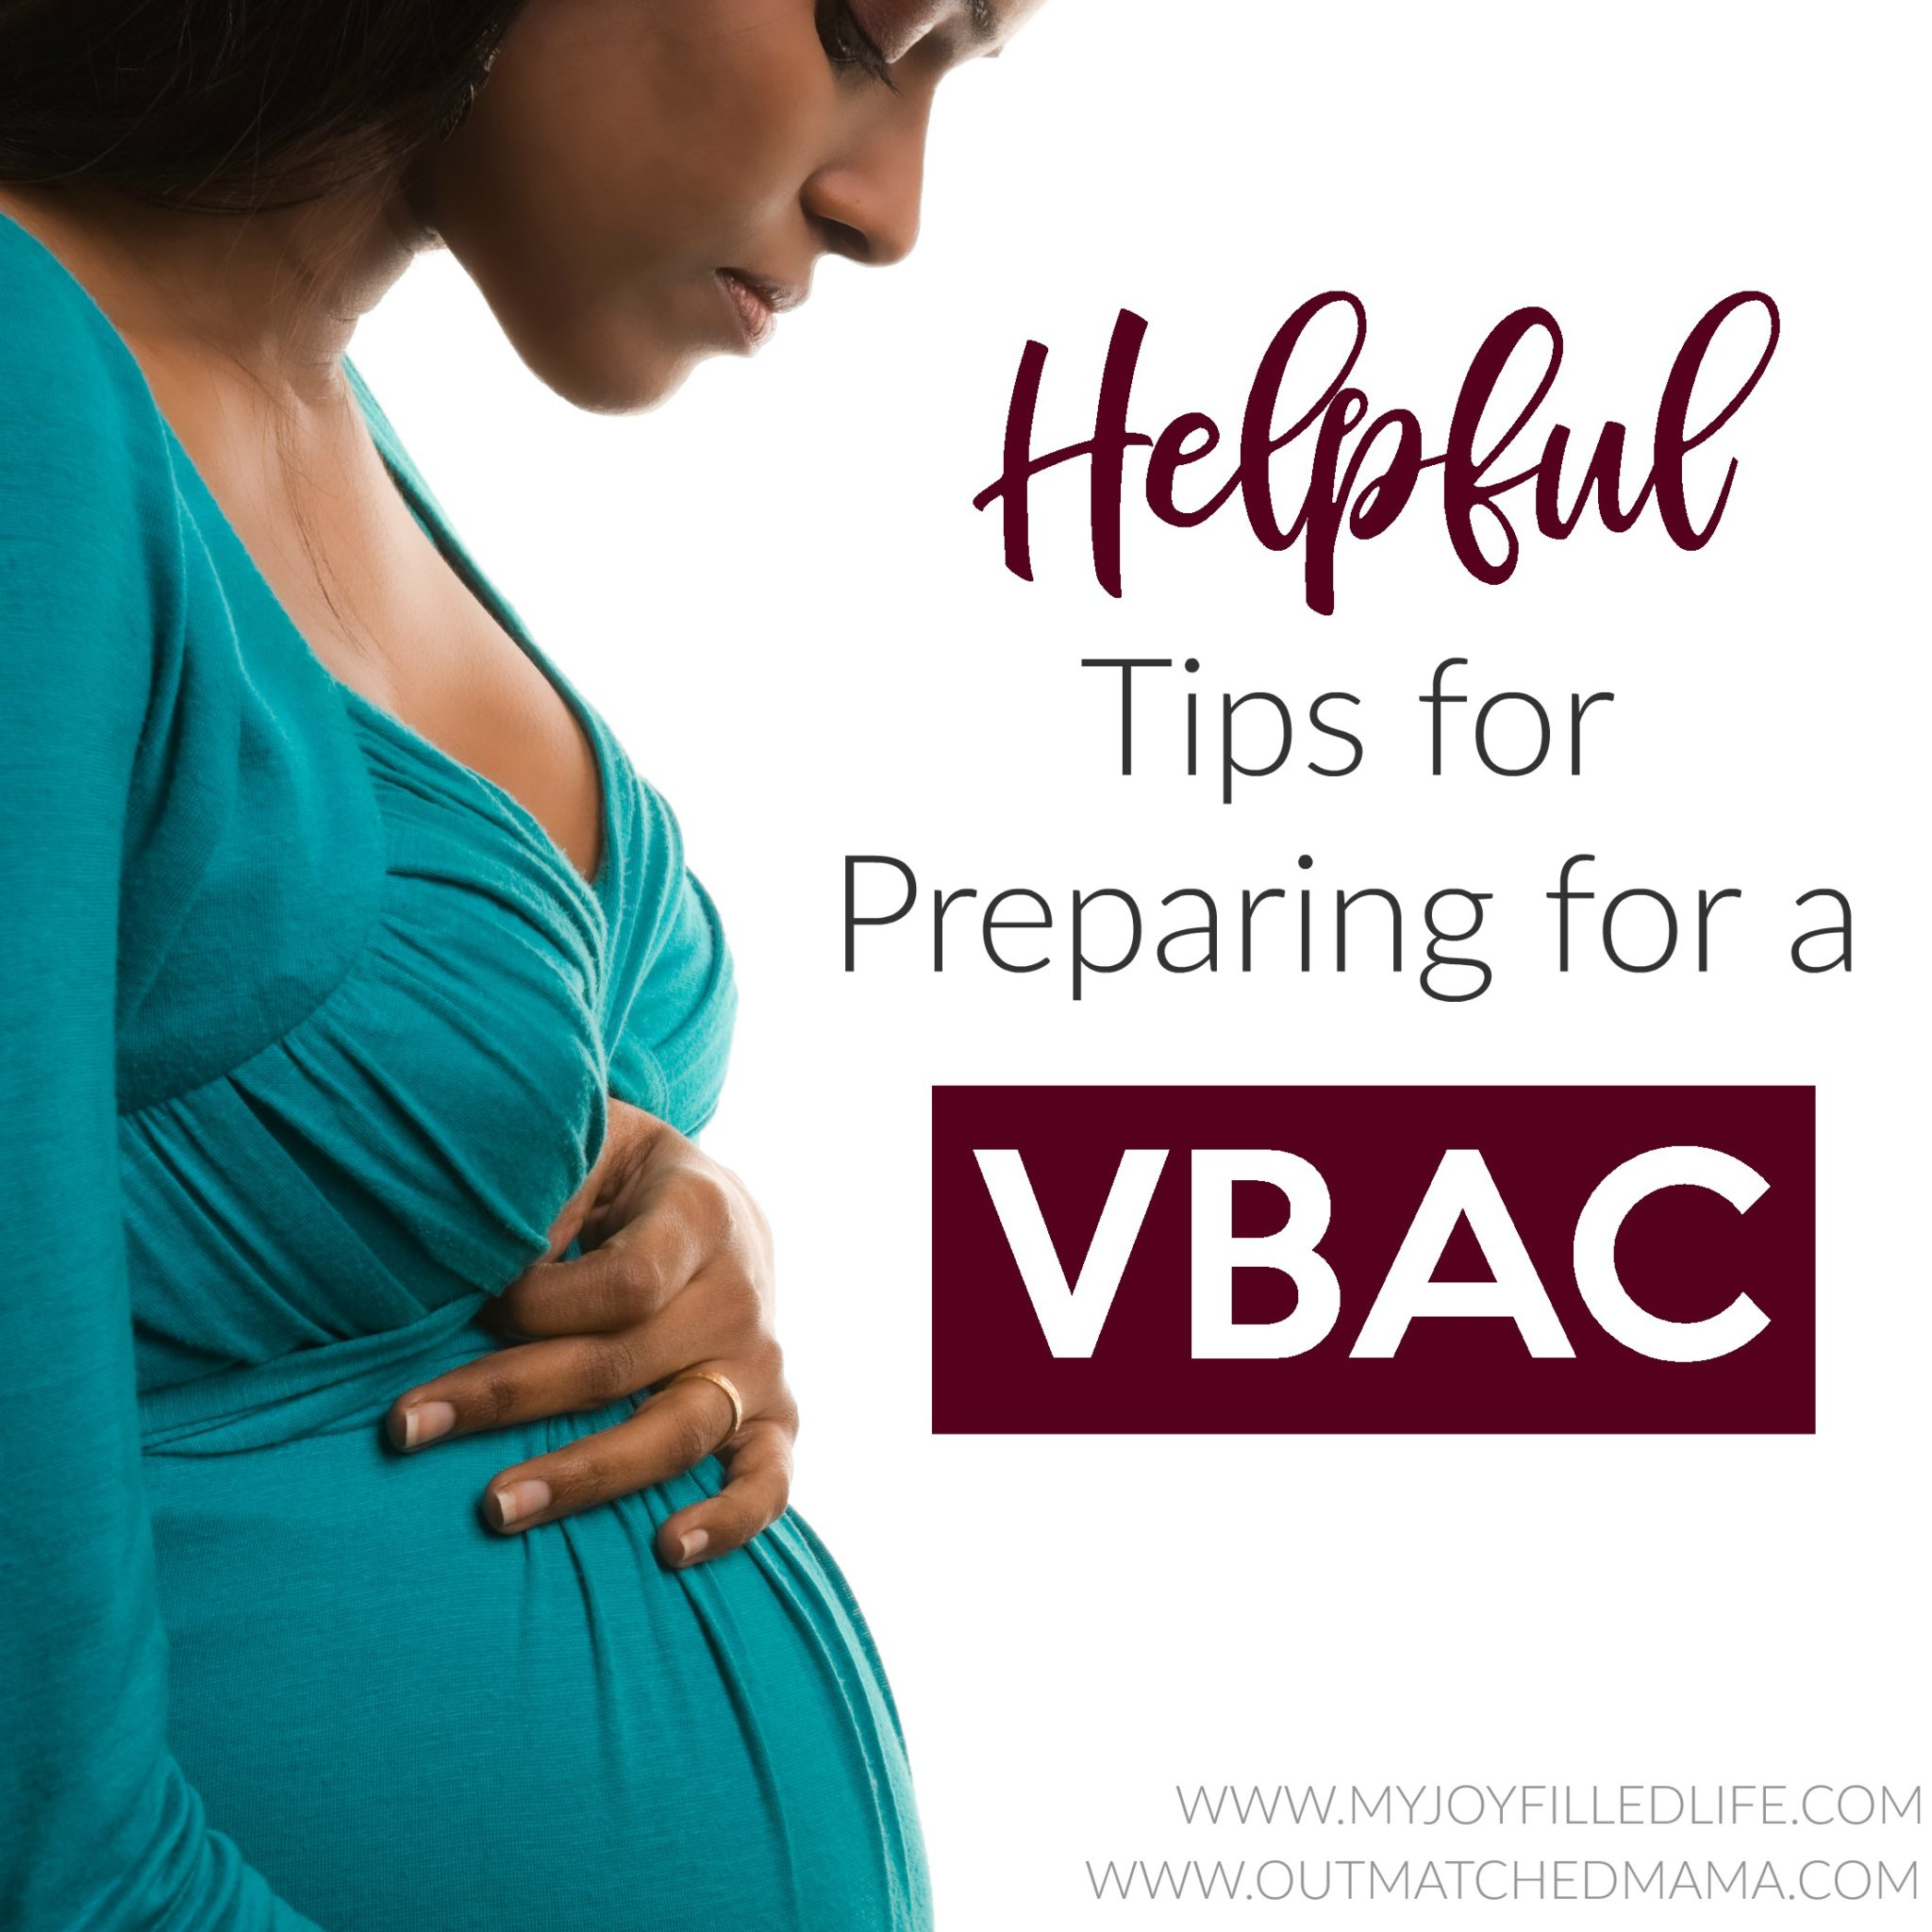 Helpful Tips for Preparing for a VBAC